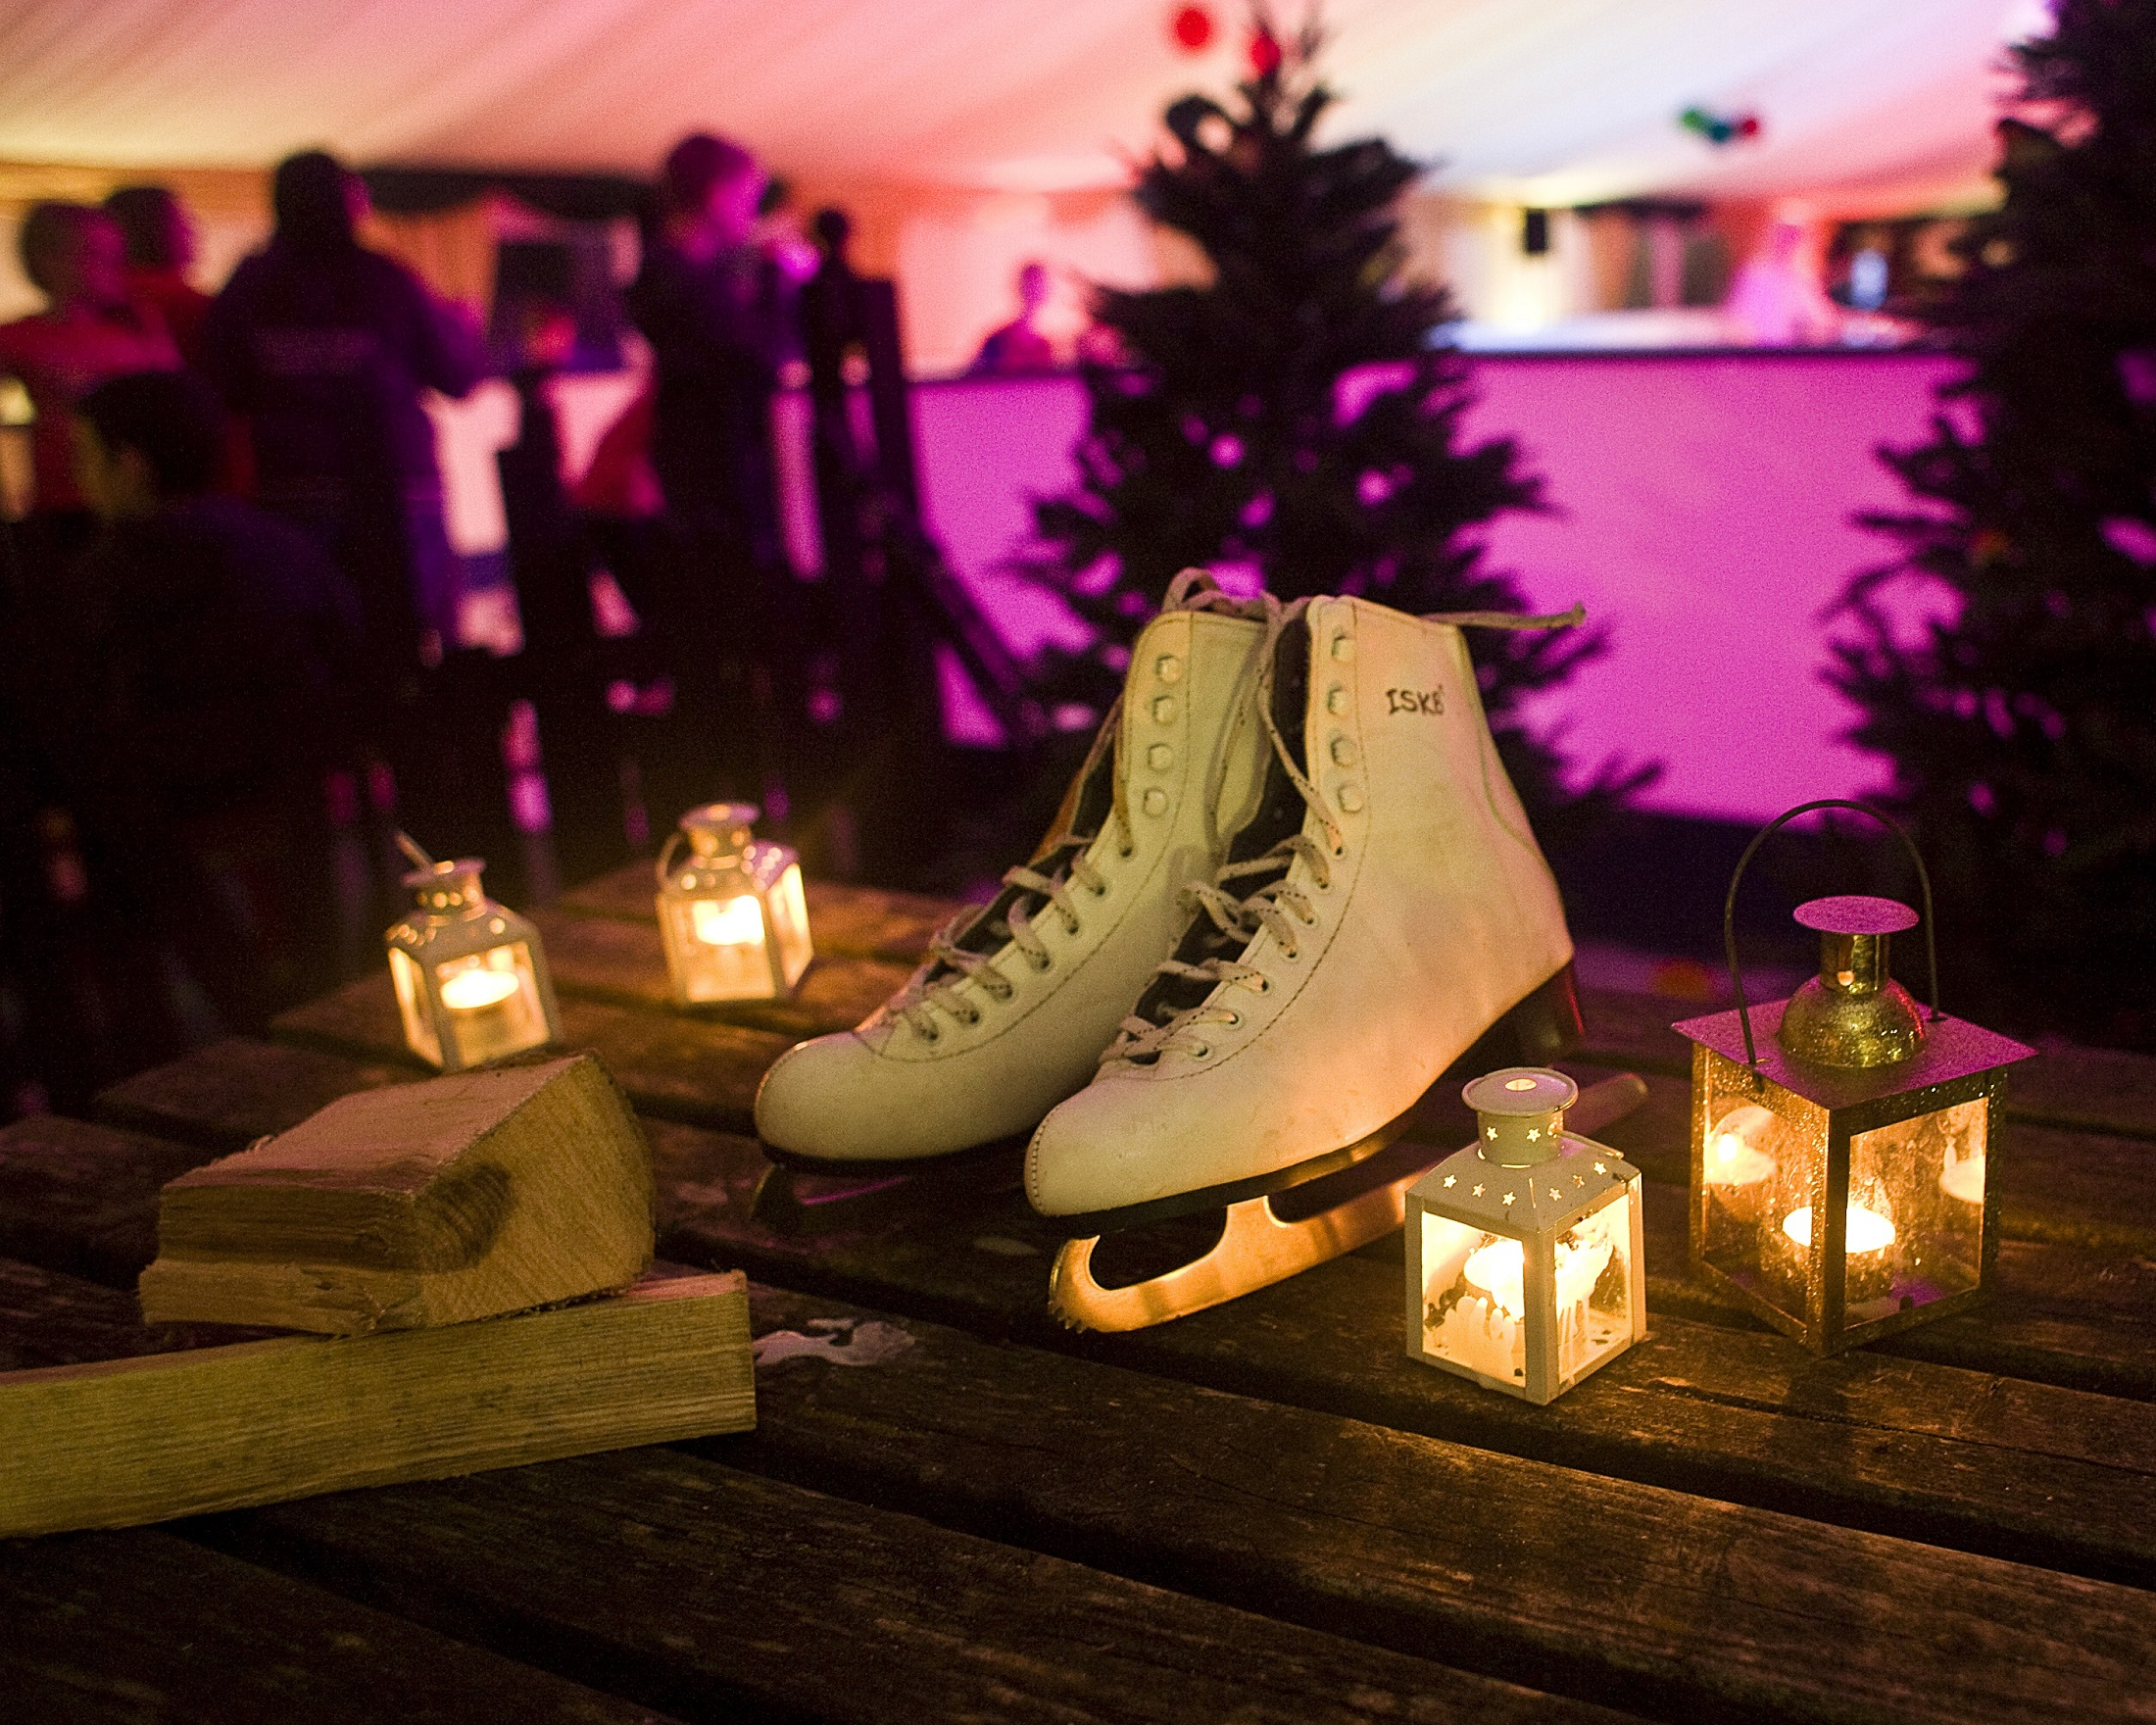 Festive Skating at Hestercombe